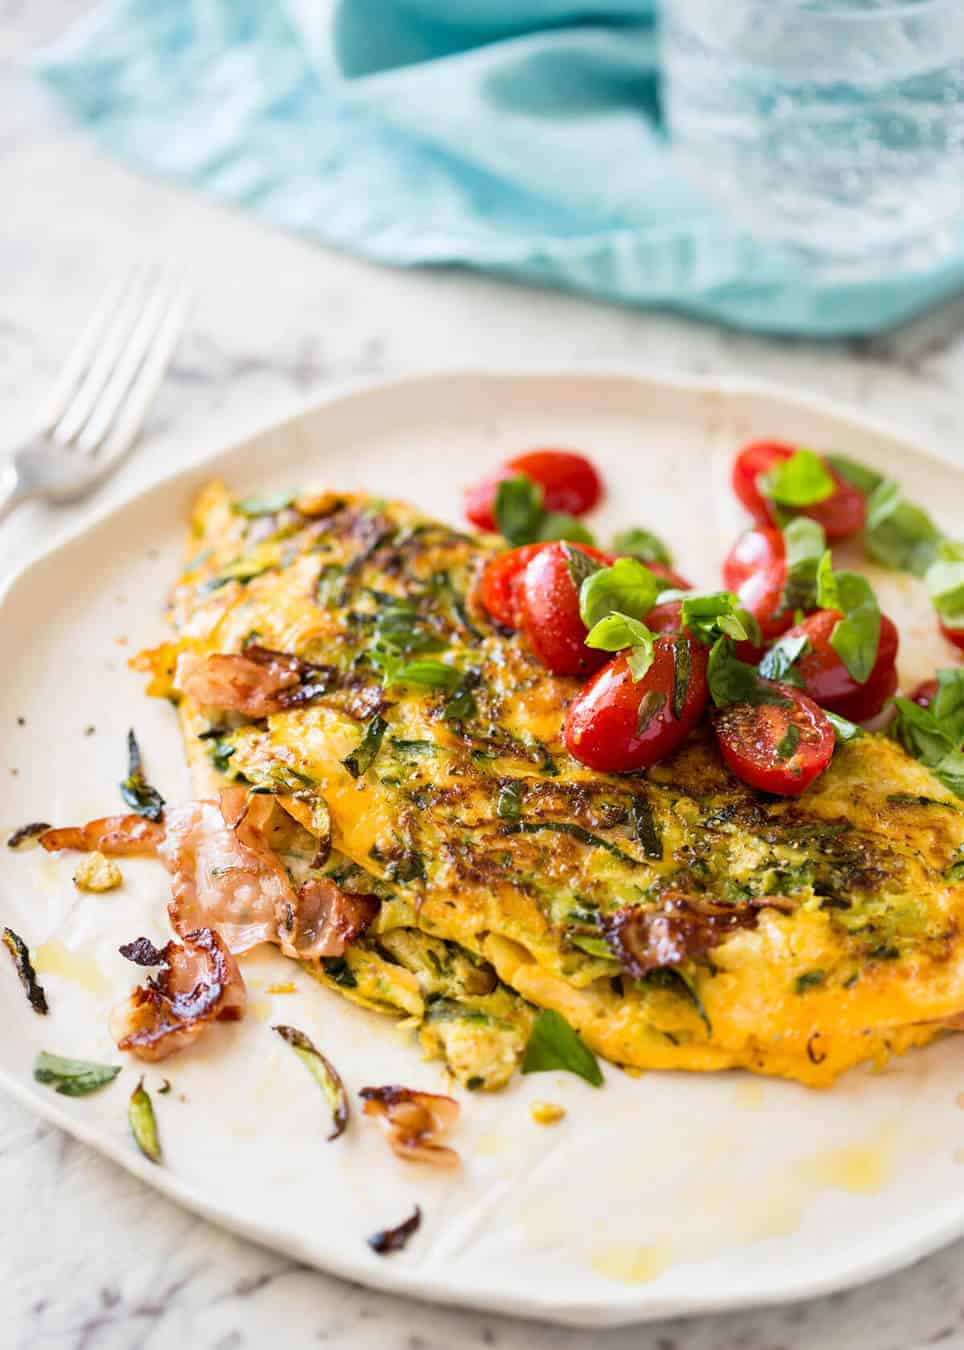 How to Make a Salmon Omelette